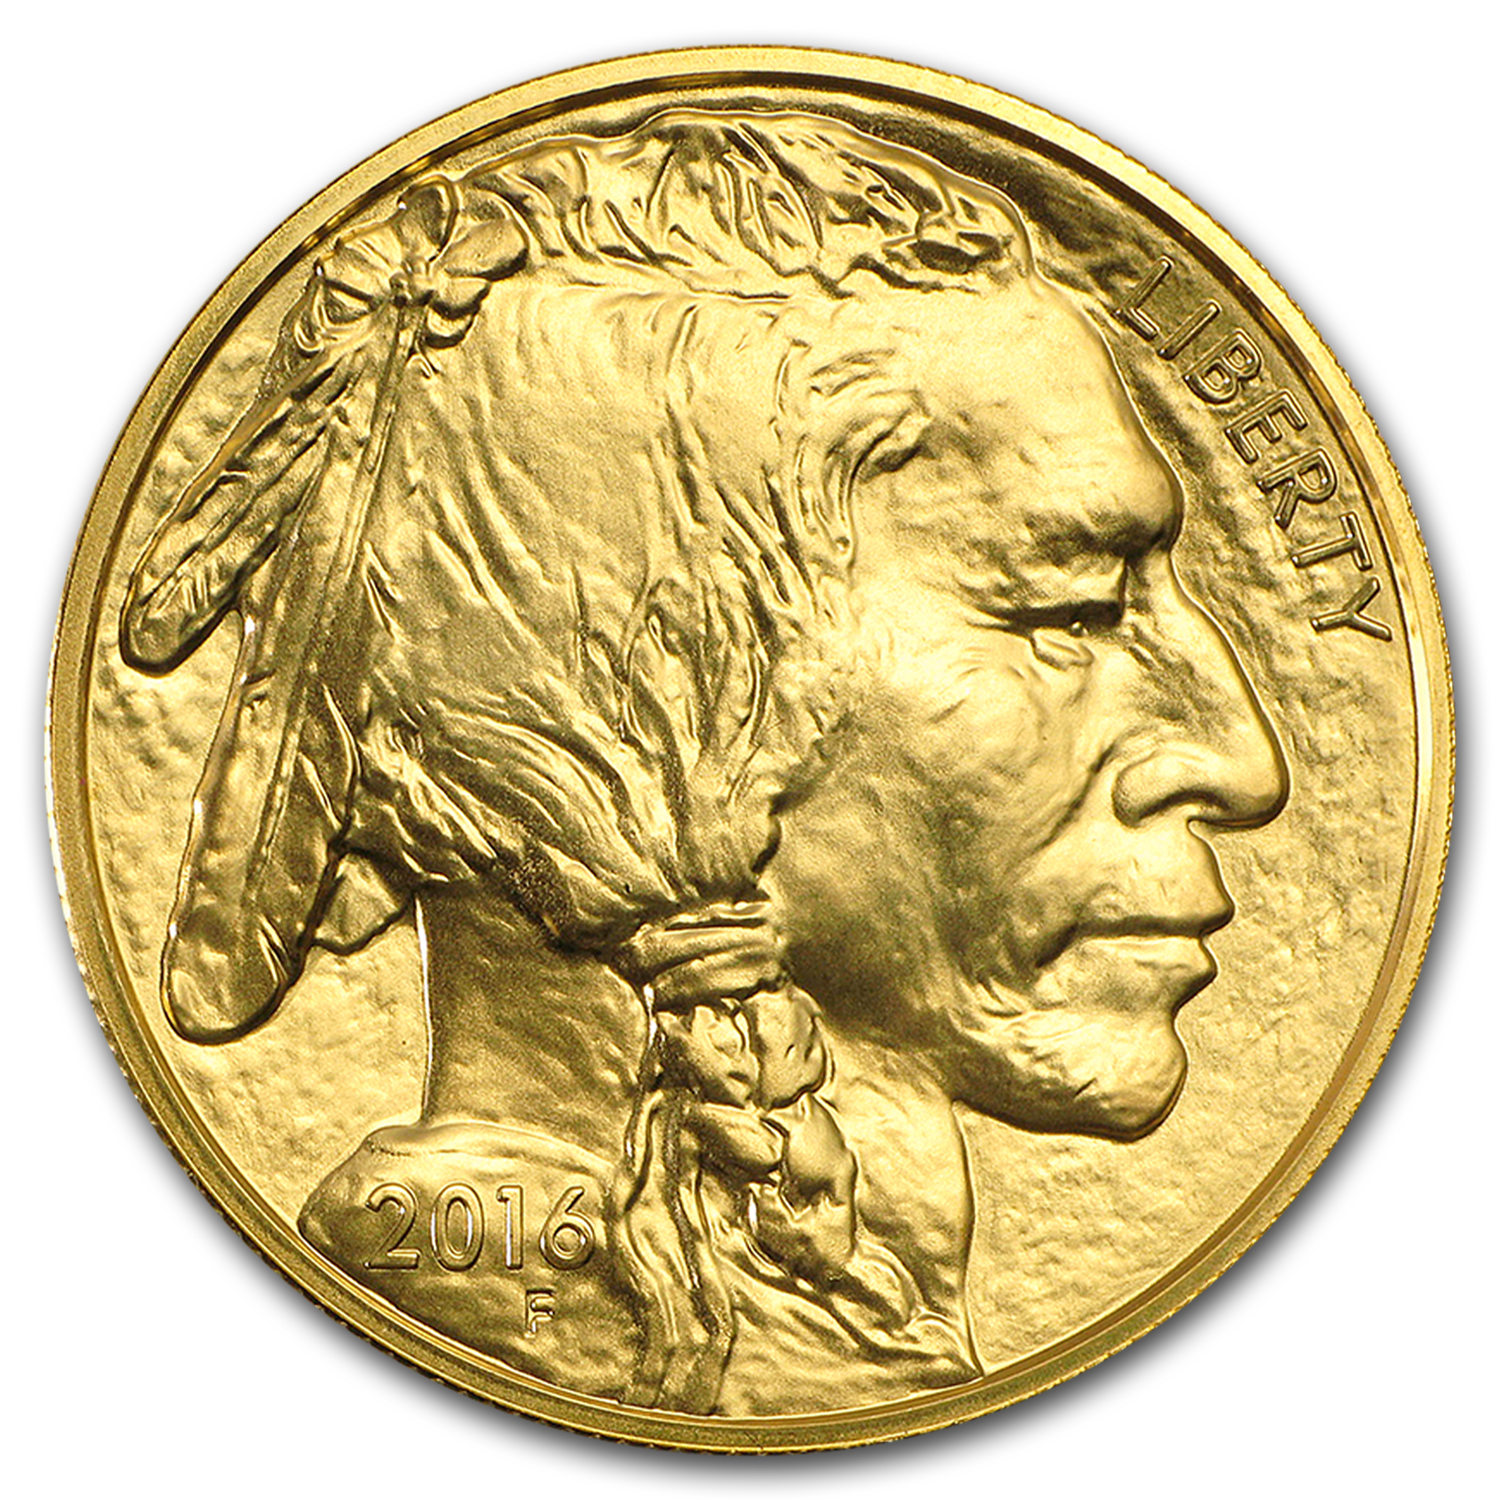 2016 1 oz Gold Buffalo BU